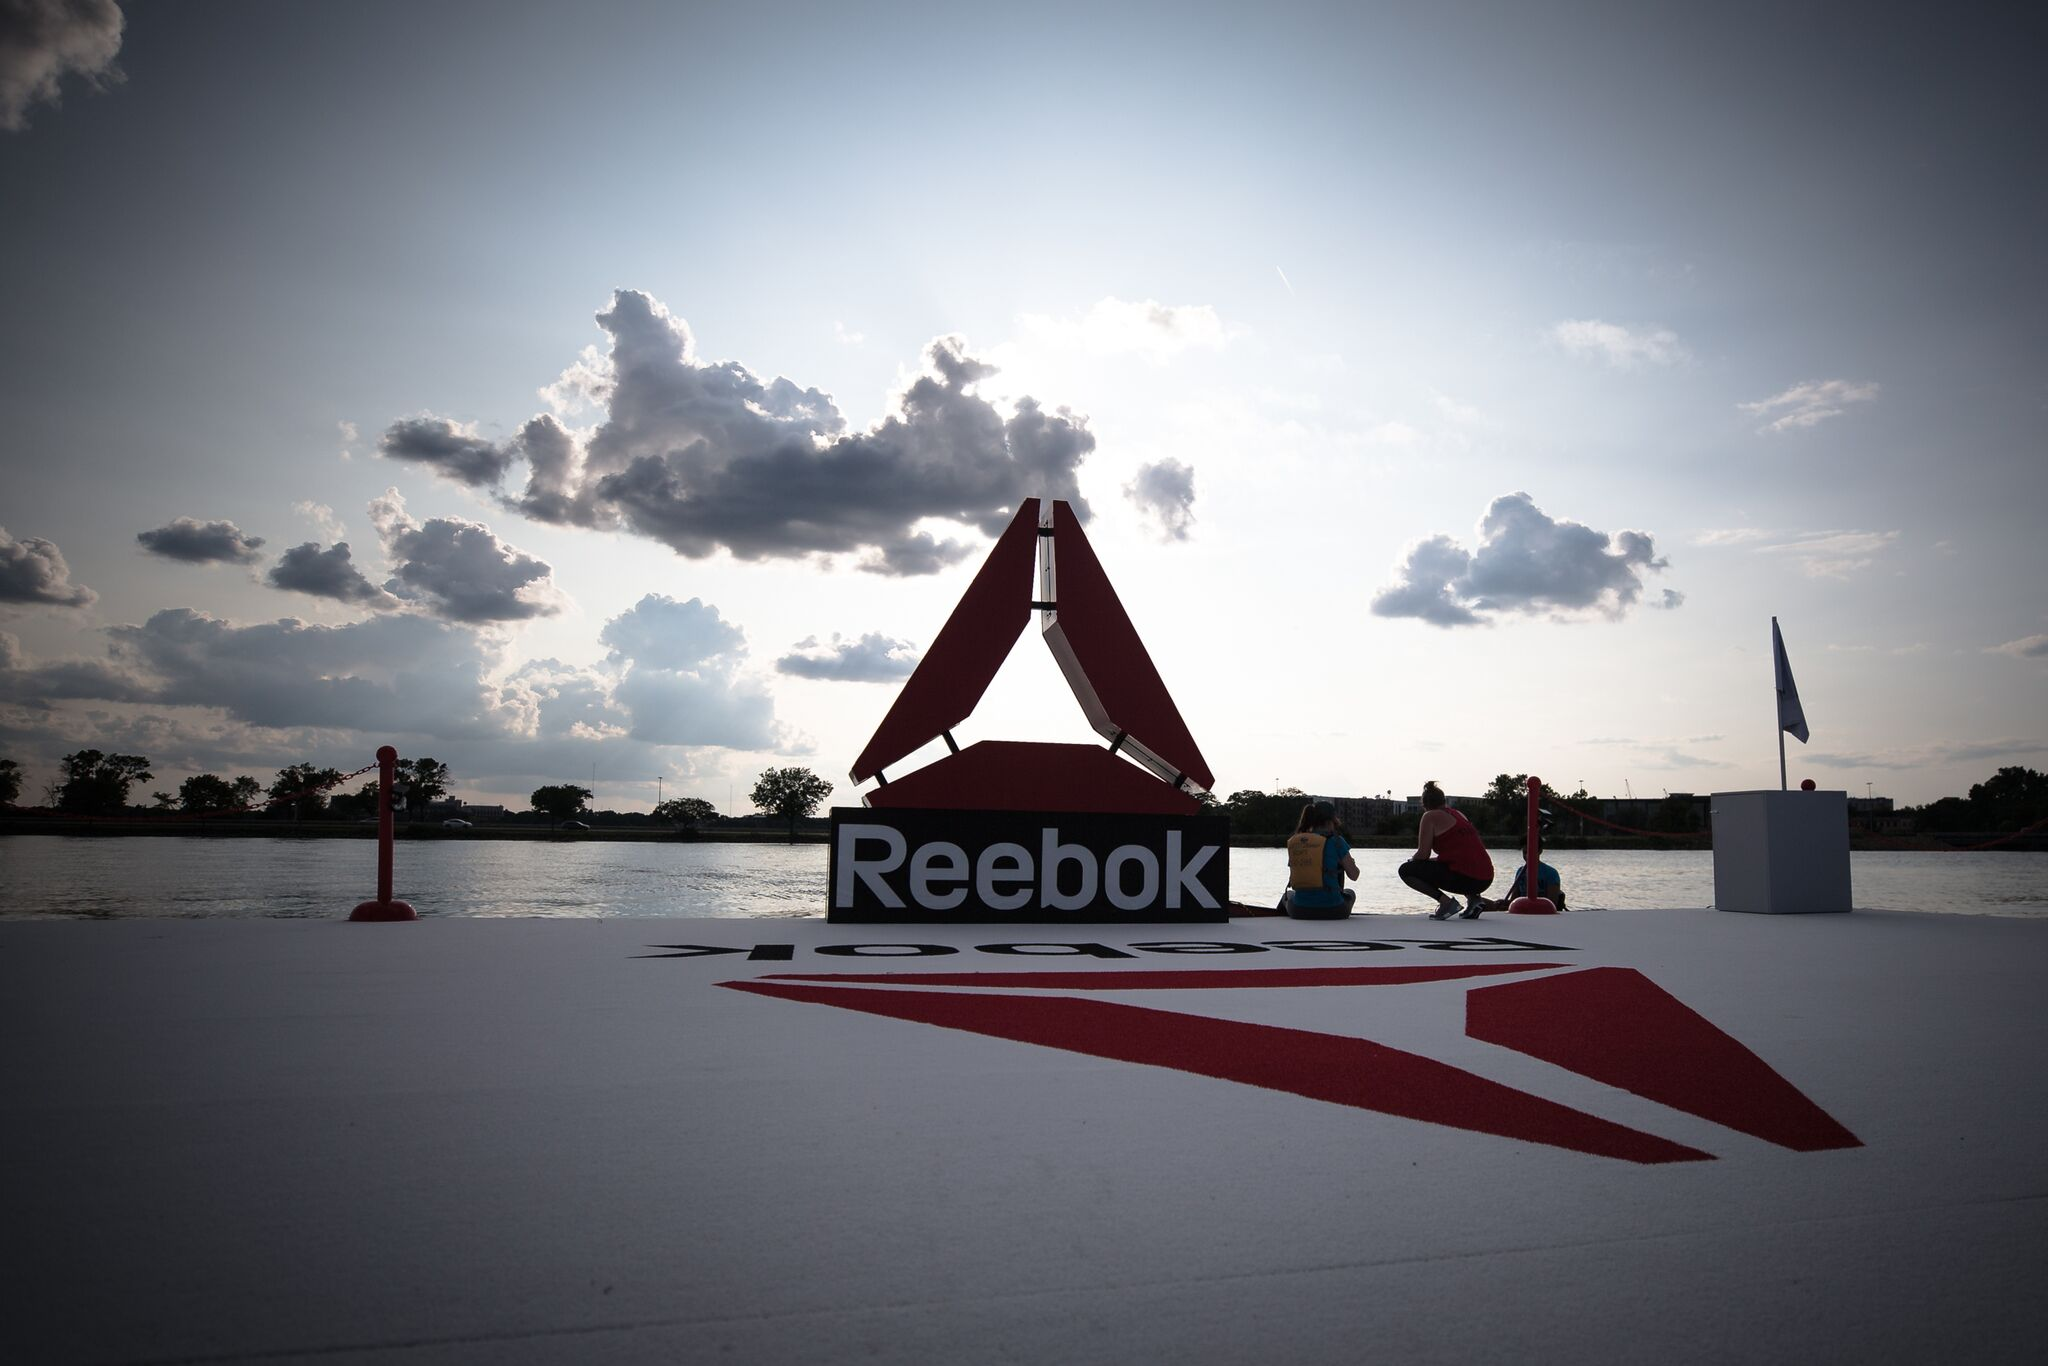 Reebok Fit Barge on Lake Monona at the 2018 CrossFit Games.